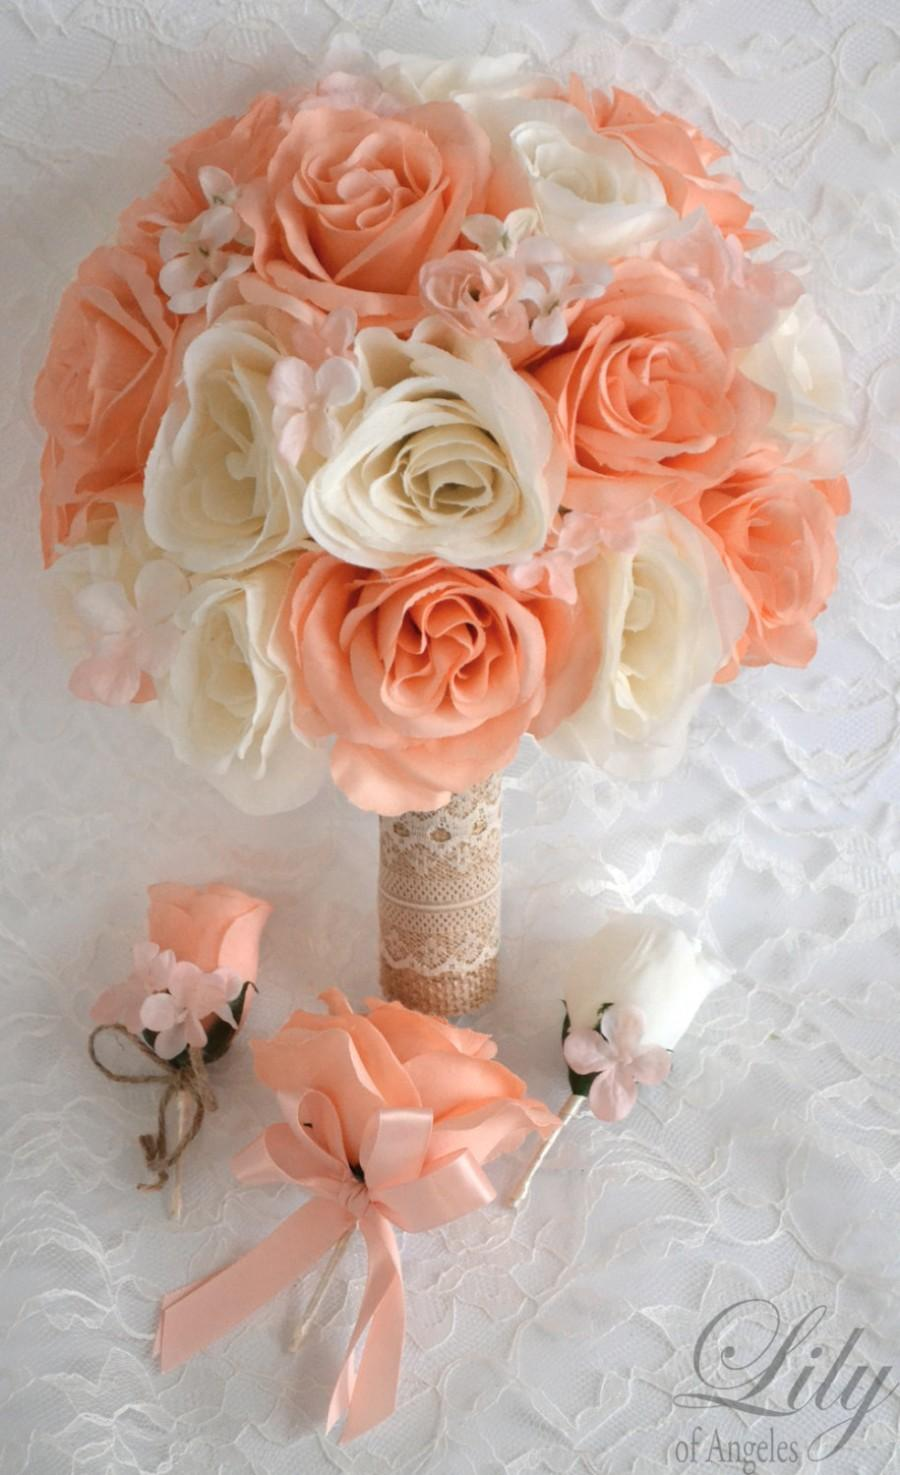 17 piece package silk flowers wedding bouquet artificial bridal 17 piece package silk flowers wedding bouquet artificial bridal bouquets decoration peach ivory burlap lace rustic lily of angeles ivpe01 izmirmasajfo